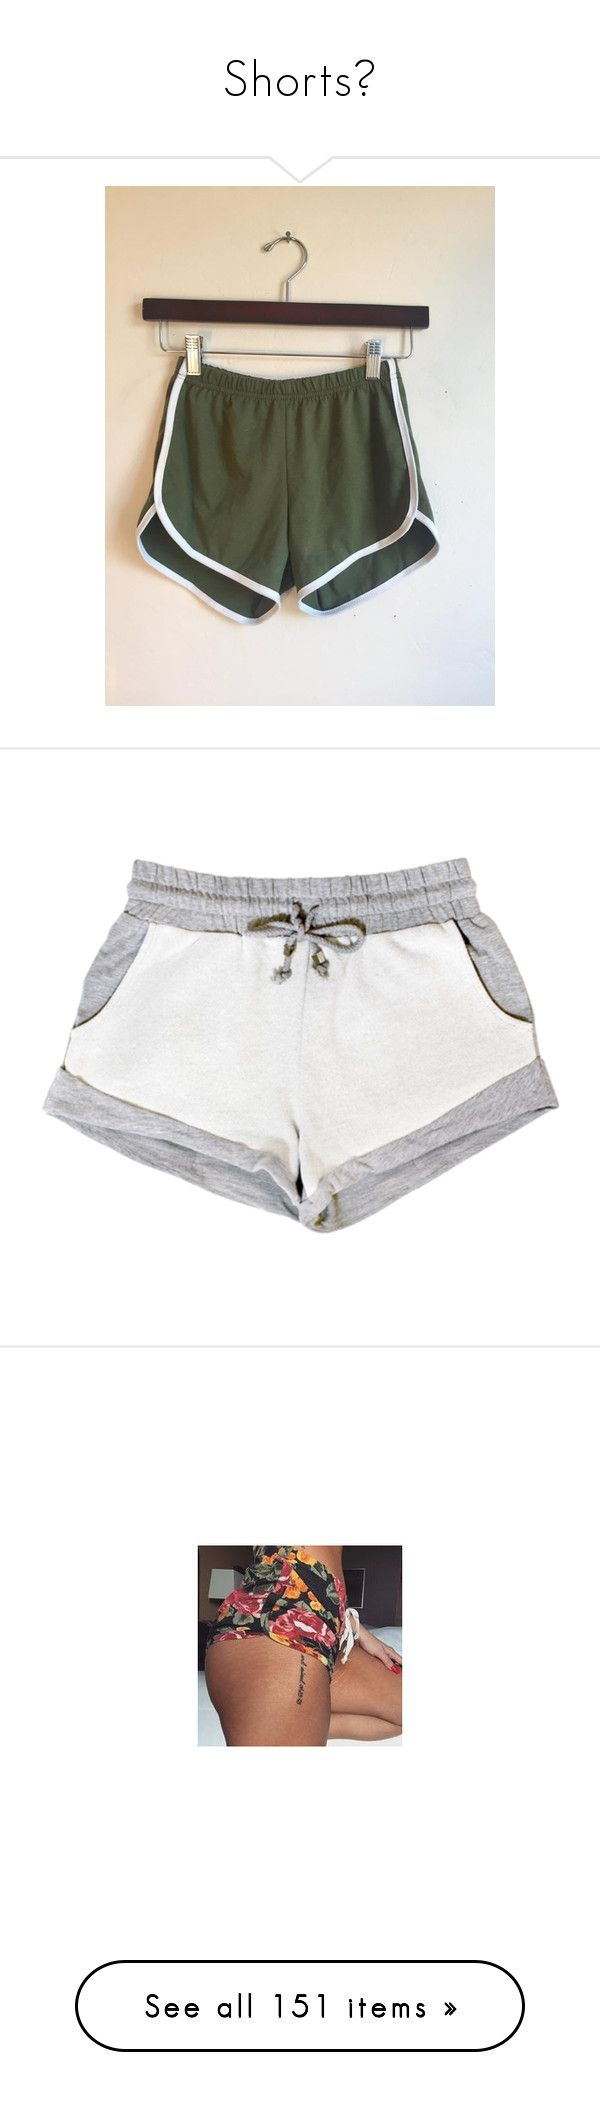 """""""Shorts🤓"""" by gamergirl247 ❤ liked on Polyvore featuring activewear, activewear shorts, black, shorts, women's clothing, bottoms, pants, shorts/skirts, red shorts and short shorts"""